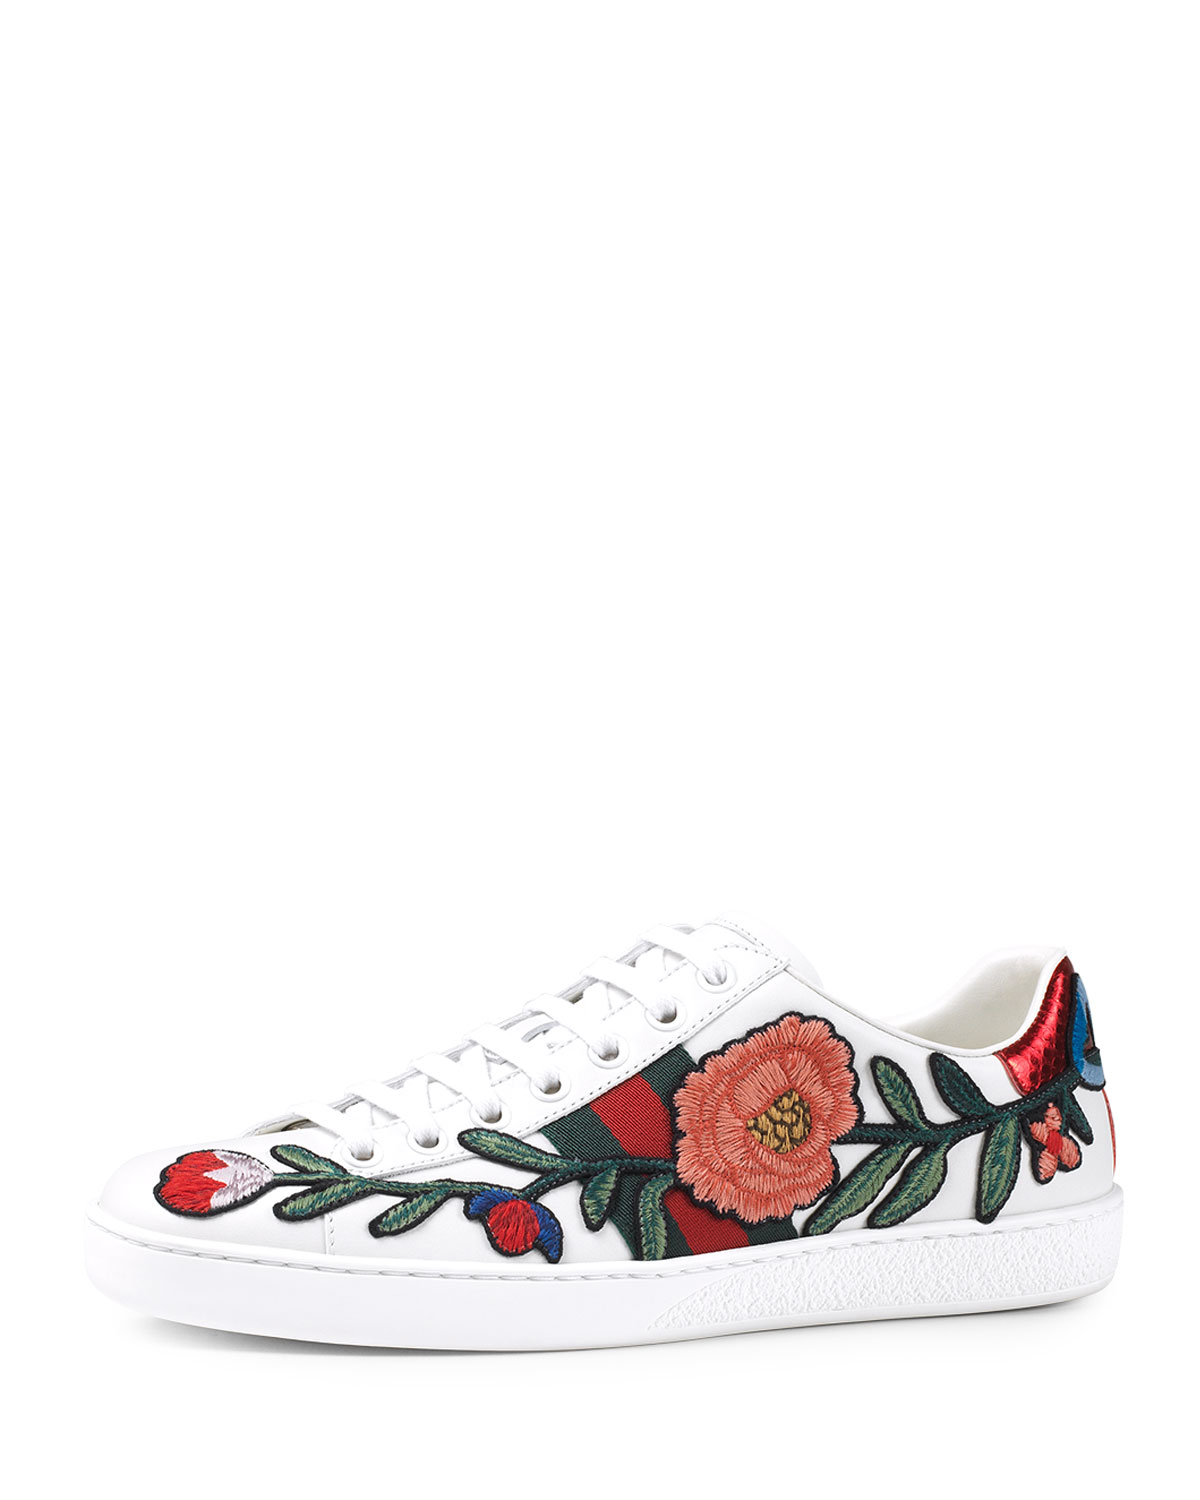 3f4394fa2 Gucci New Ace Floral-embroidered Leather Low-top Sneakers in White ...